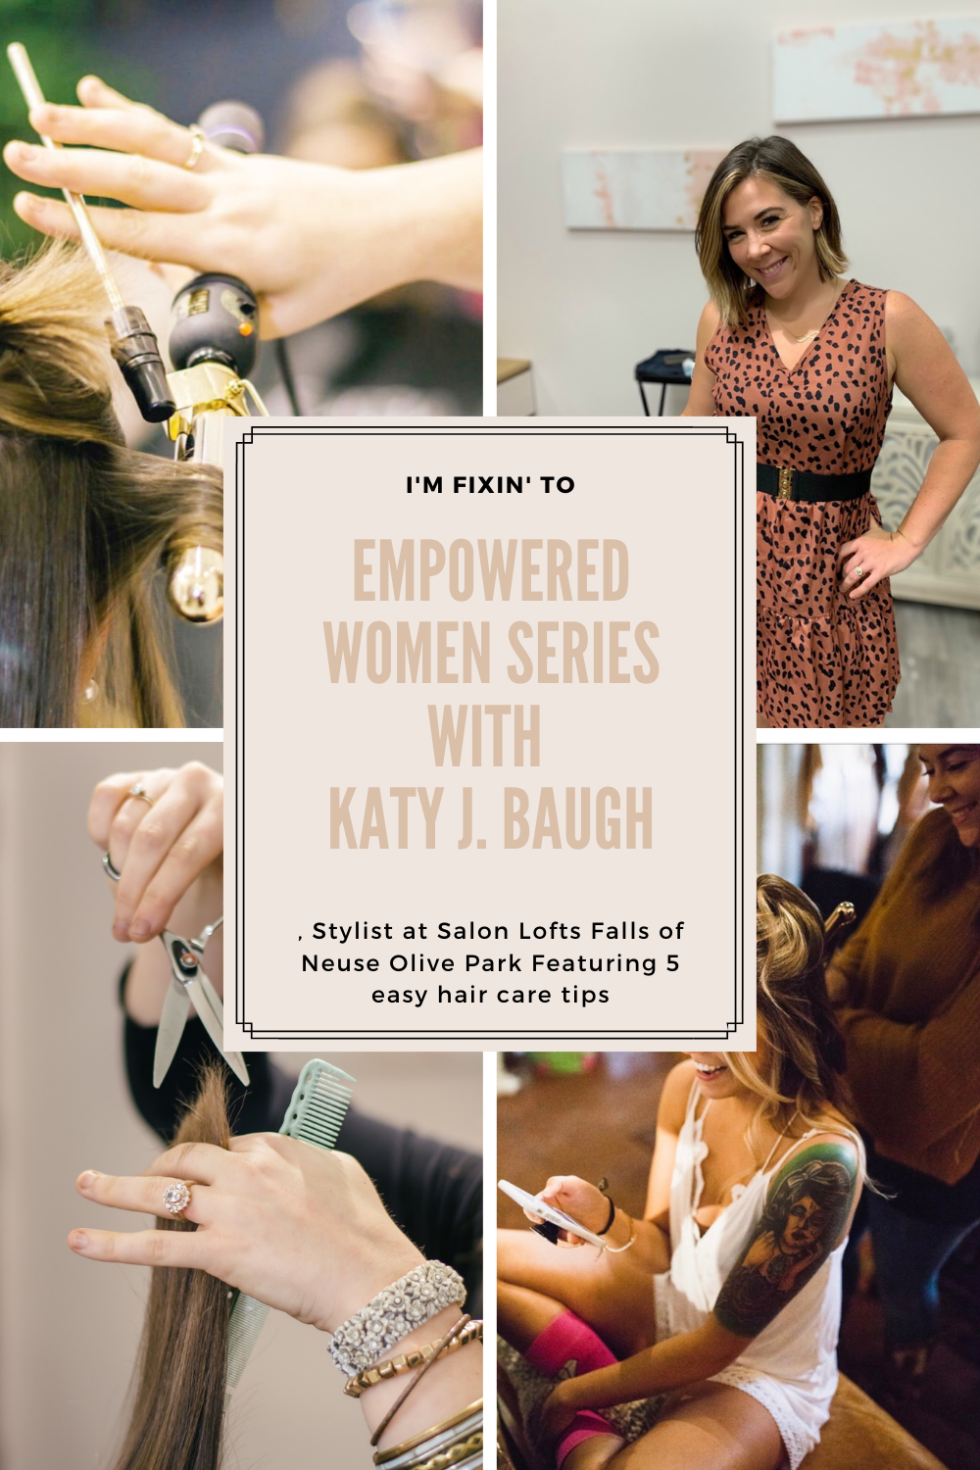 Empowered Women Series with Katy J. Baugh, Stylist at Salon Lofts Falls of Neuse Olive Park - I'm Fixin' To - @mbg0112 | Salon Lofts Falls of Neuse Olive Park by popular N.C. lifestyle blog, I'm Fixin' To: Pinterest image of a woman doing women's hair.